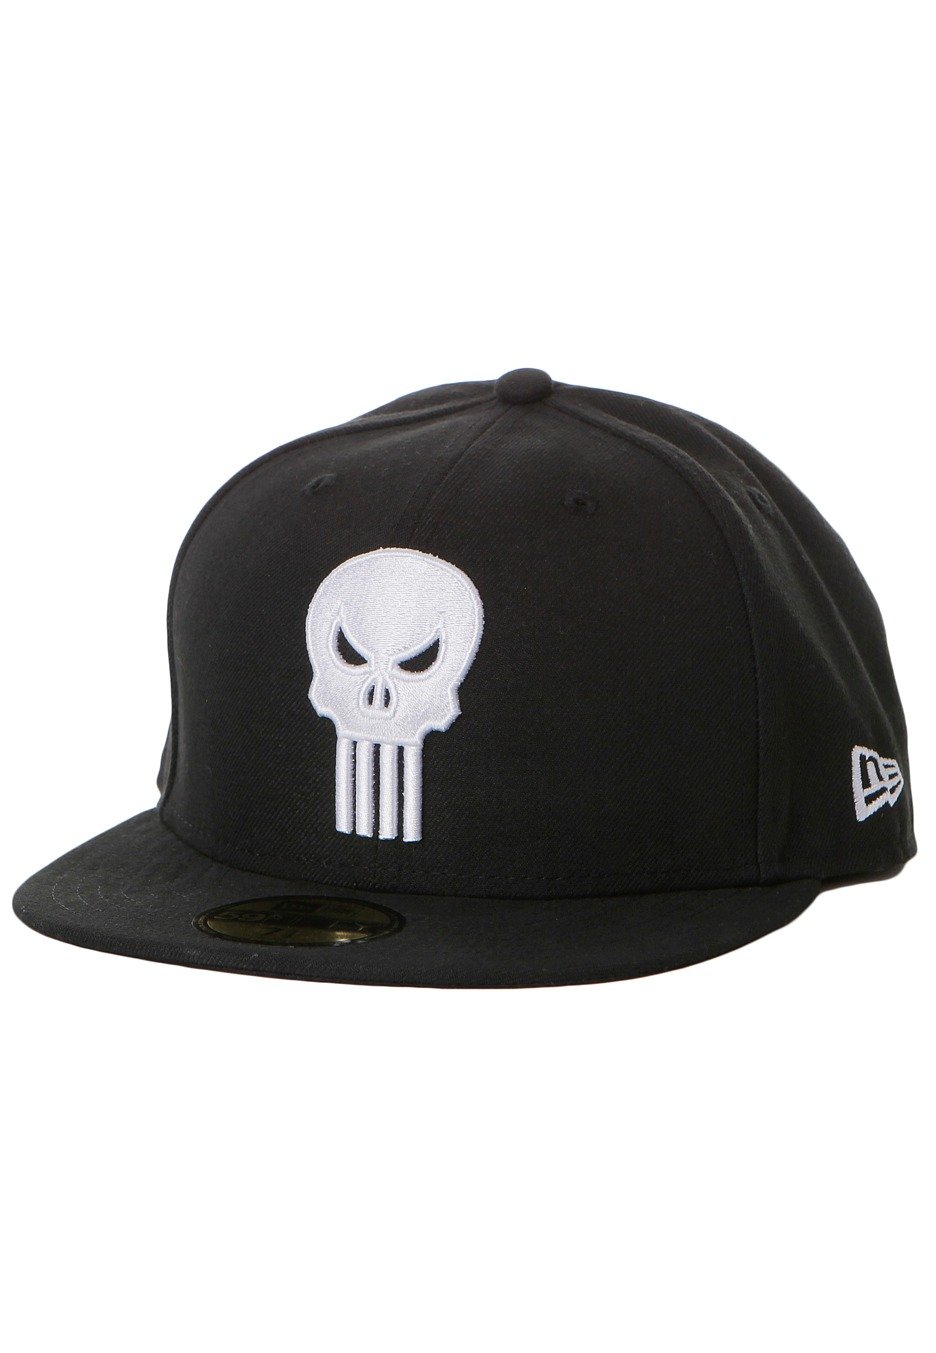 punisher hat in addition - photo #3